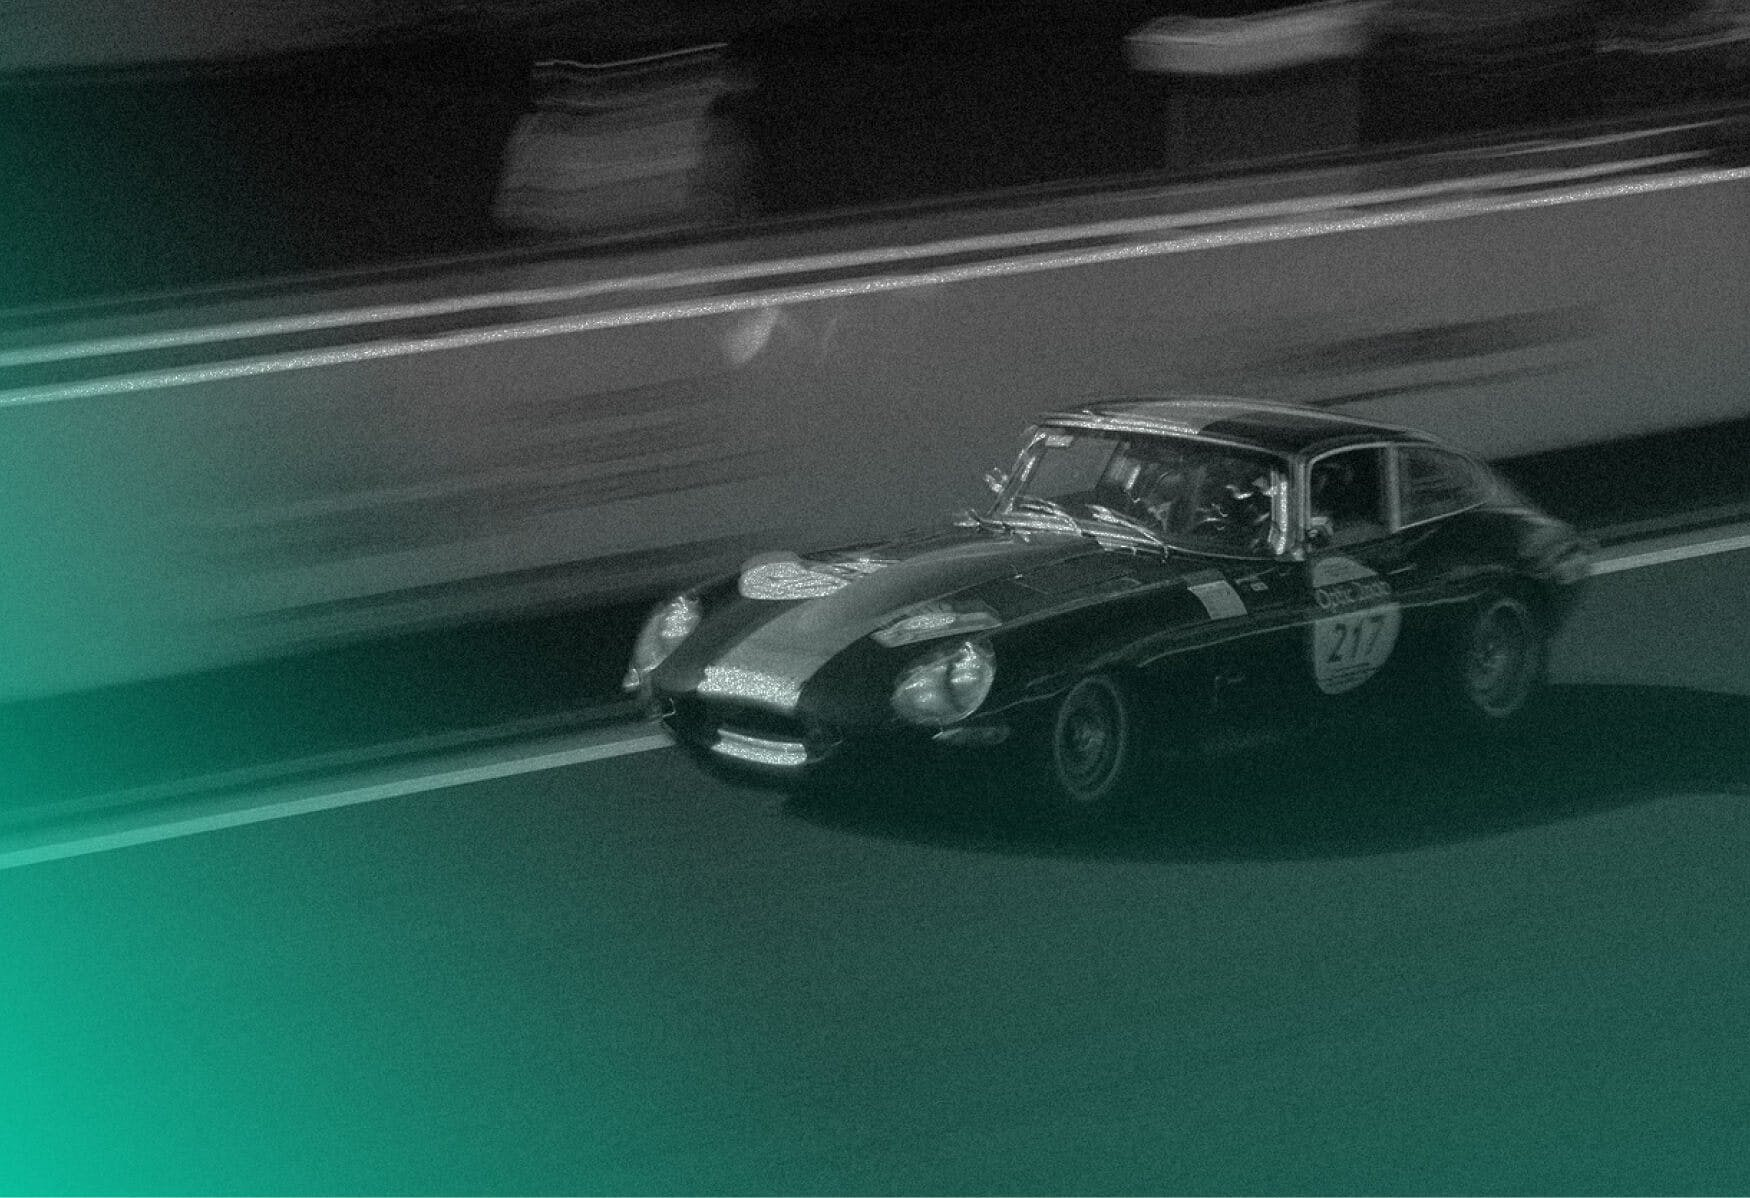 Vintage car on race with green gradient